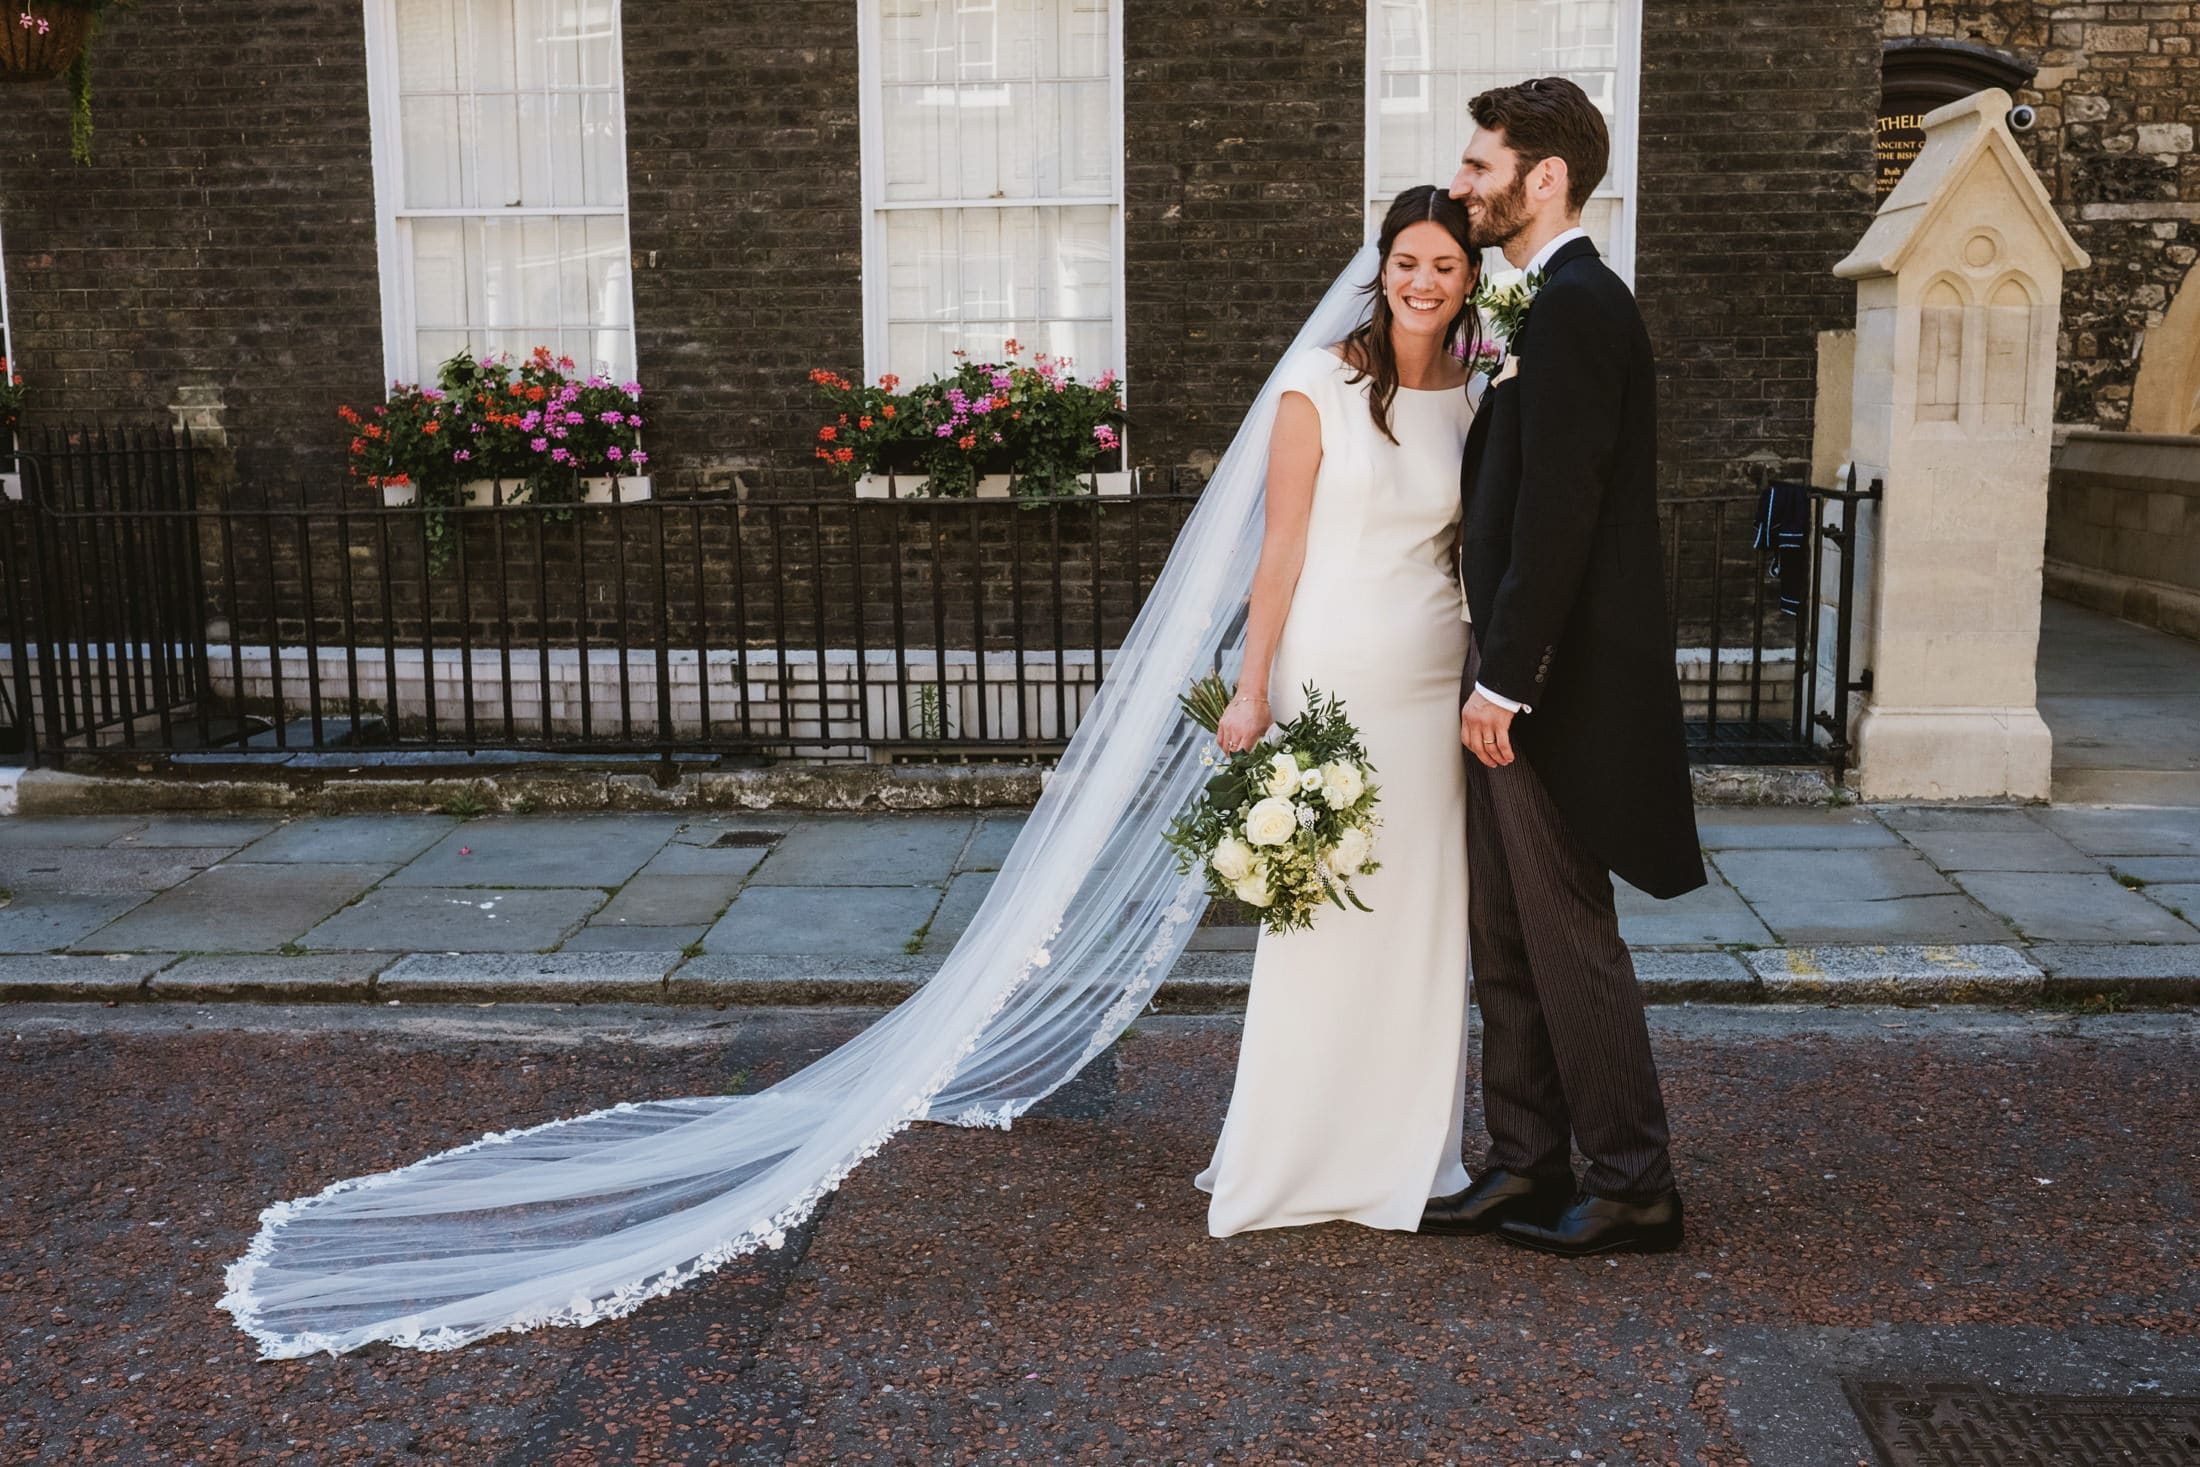 A bride and groom stand together on a London street